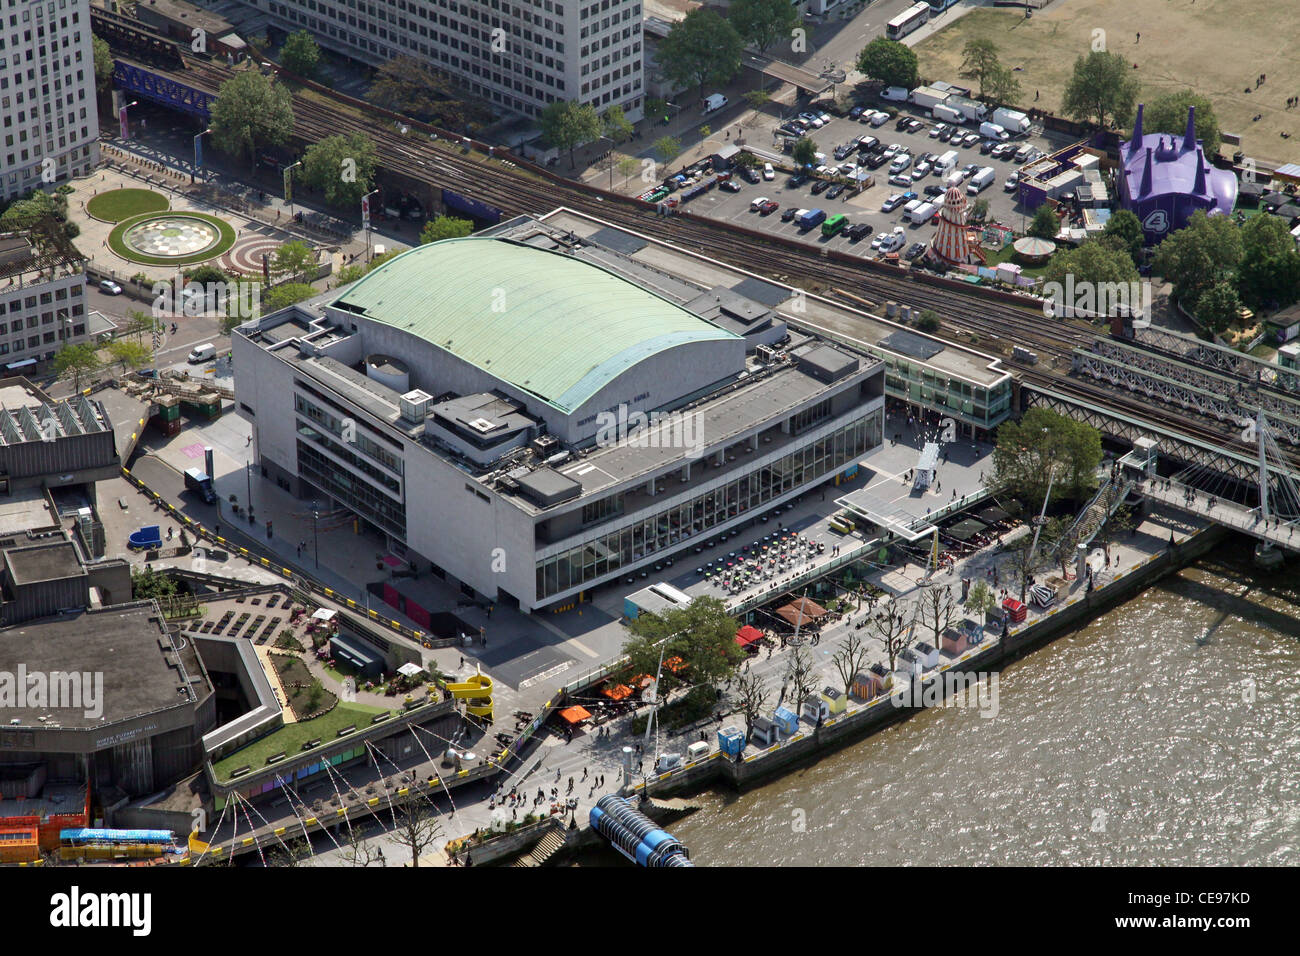 Aerial photograph of The Royal Festival, South Bank, London - Stock Image